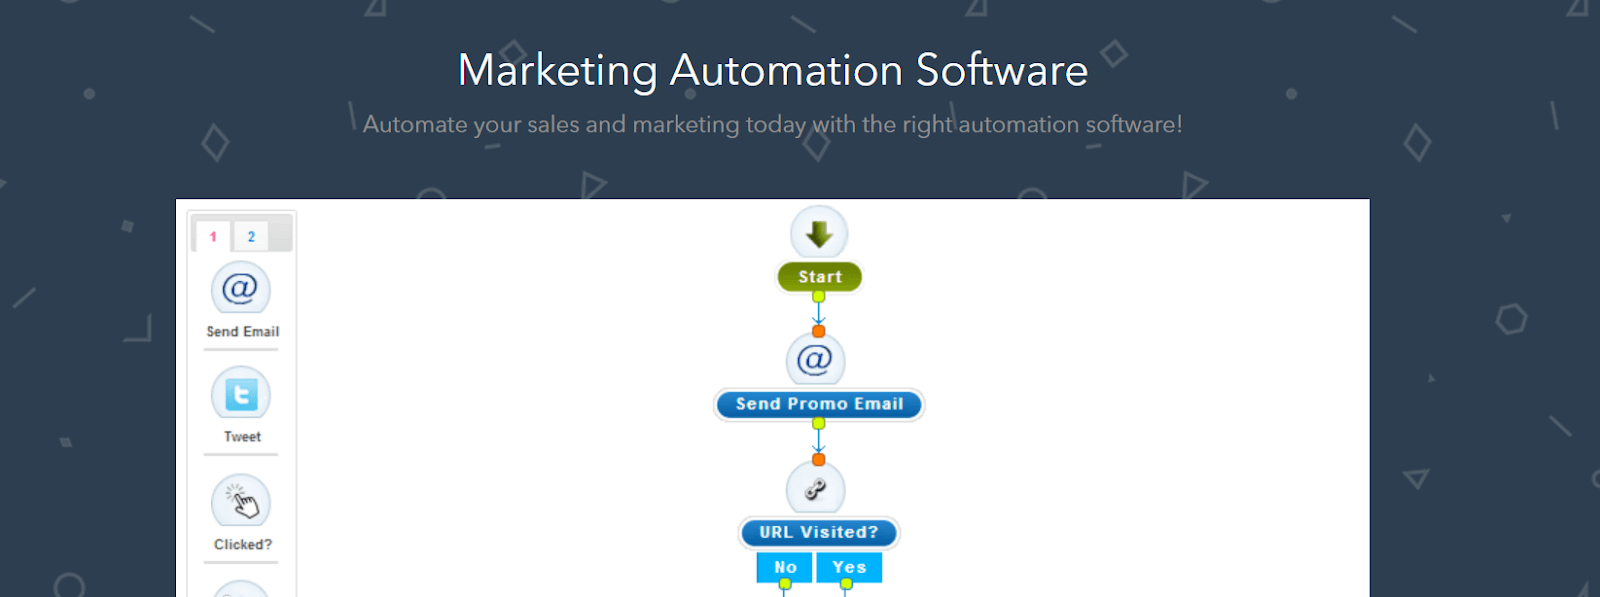 Agile CRM Marketing Automation Software